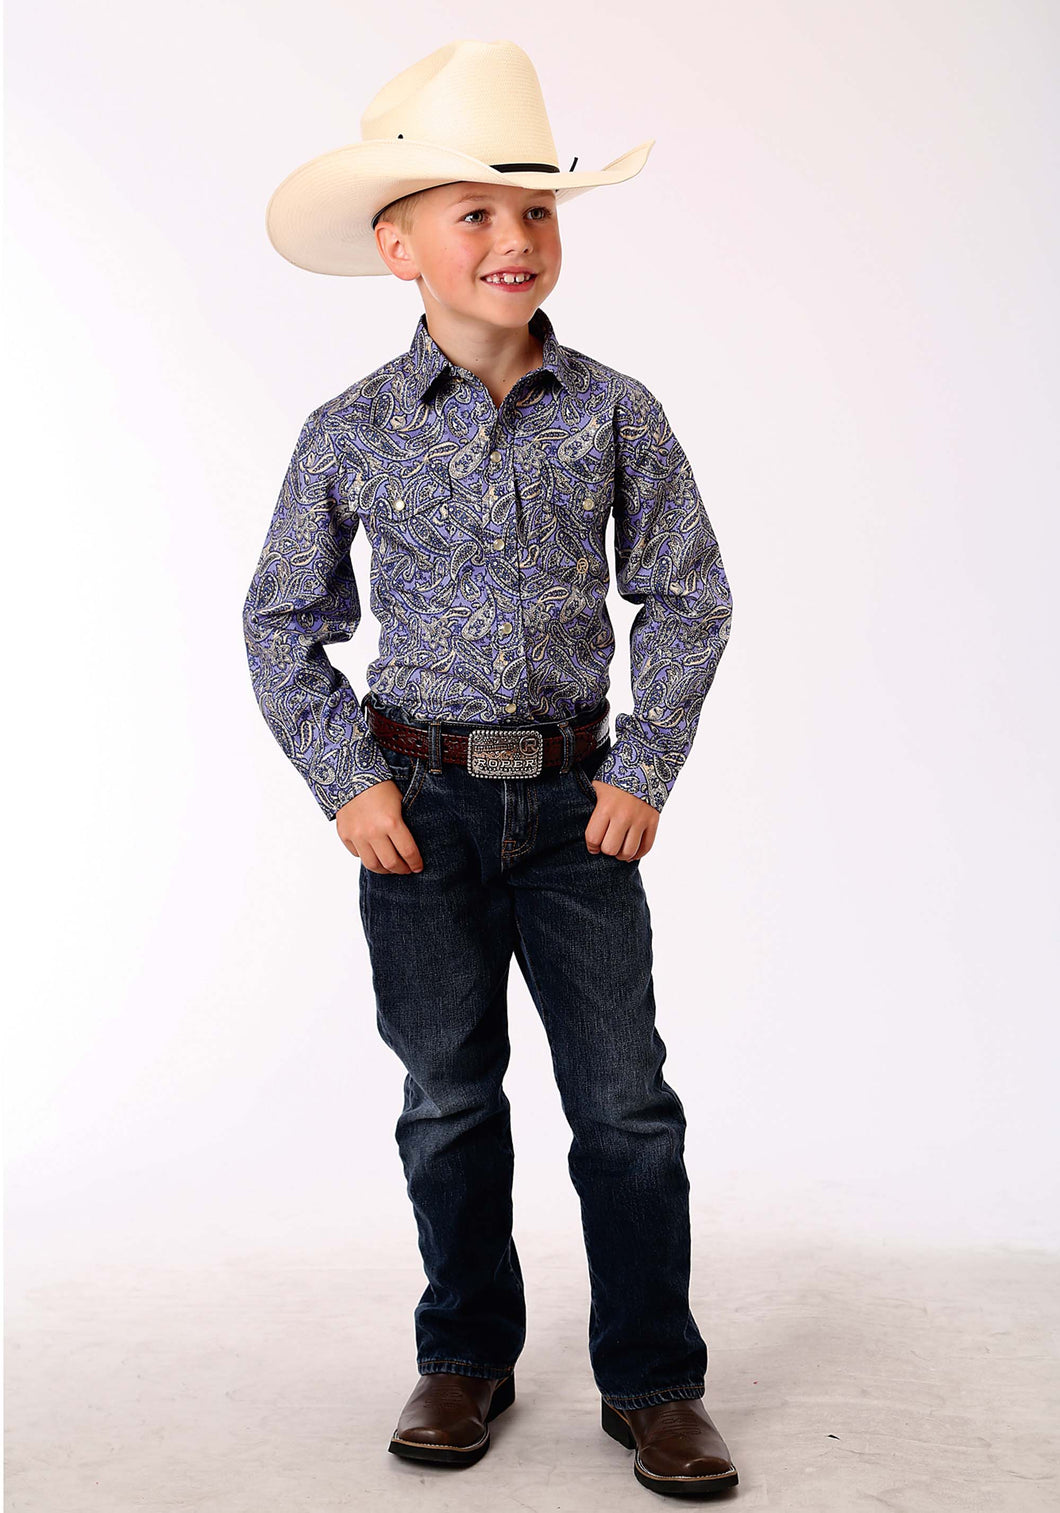 Boys Amarillo Collection- Bridle Path Amarillo Boys Long Sleeve Shirt 0840 Antique Paisley Print